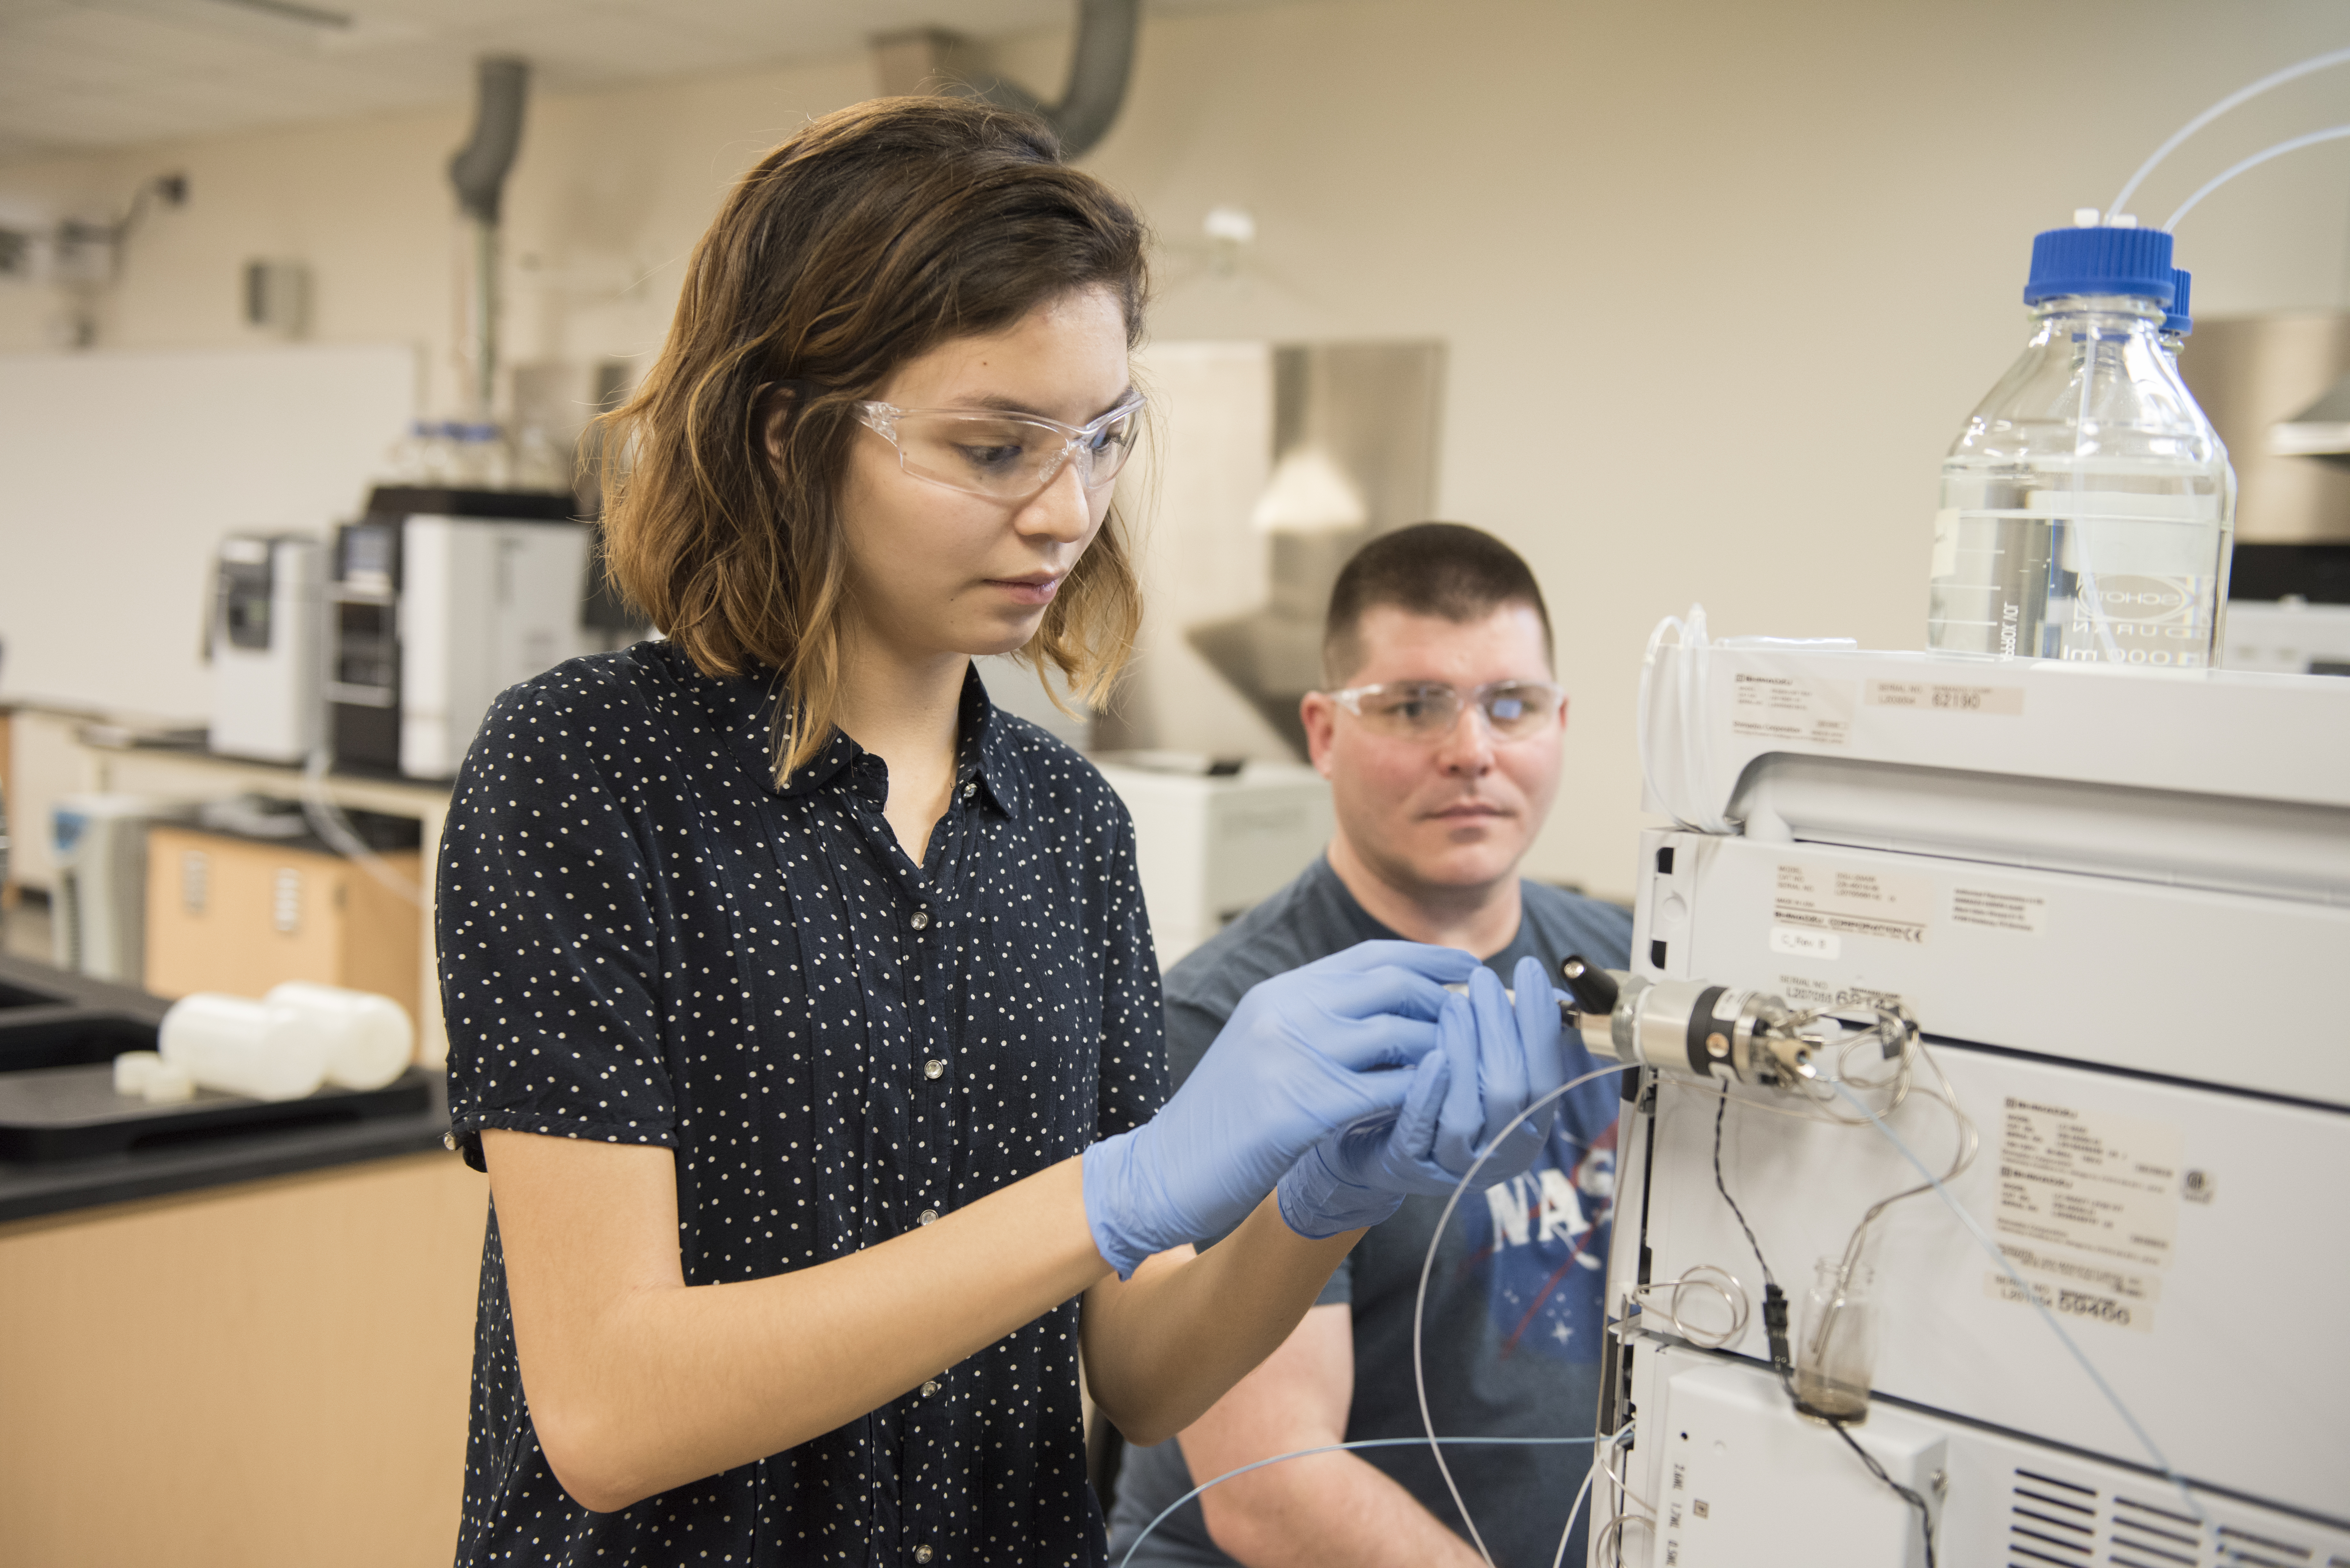 A male and female student working on new instruments in SCJ science lab